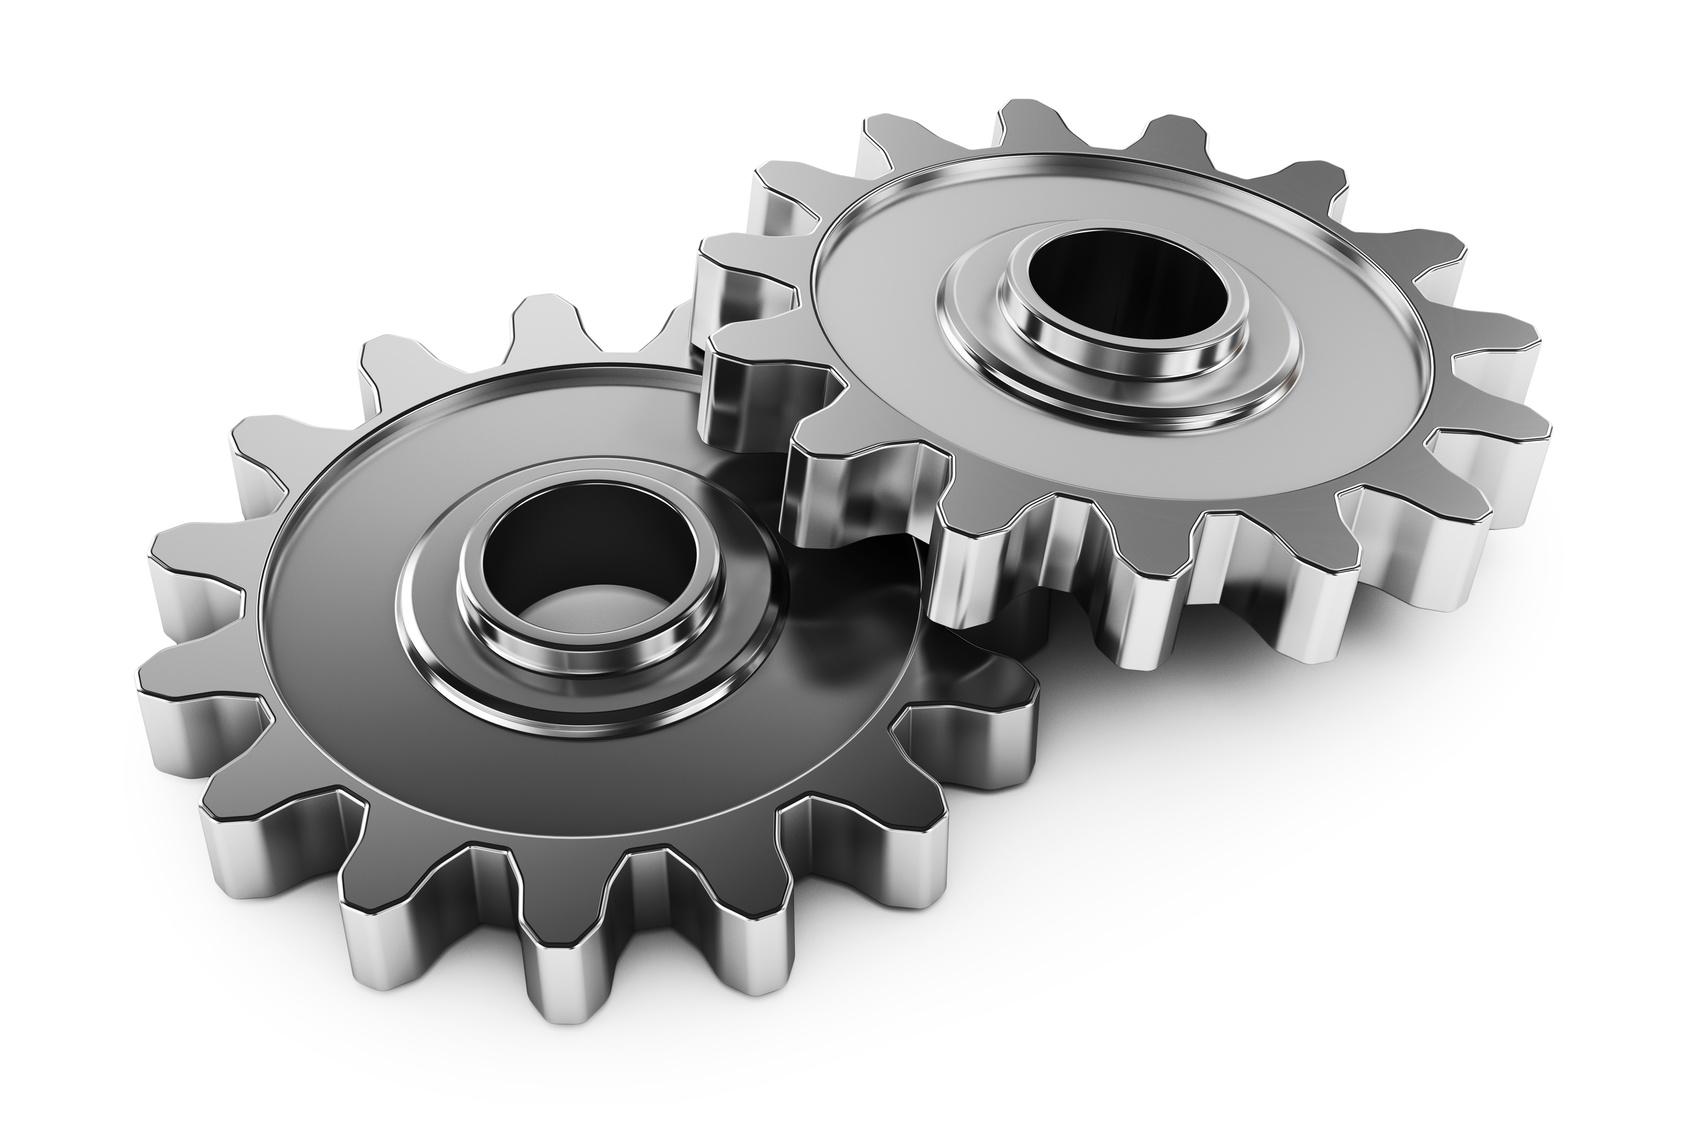 Equipment created by a spur gear manufacturer